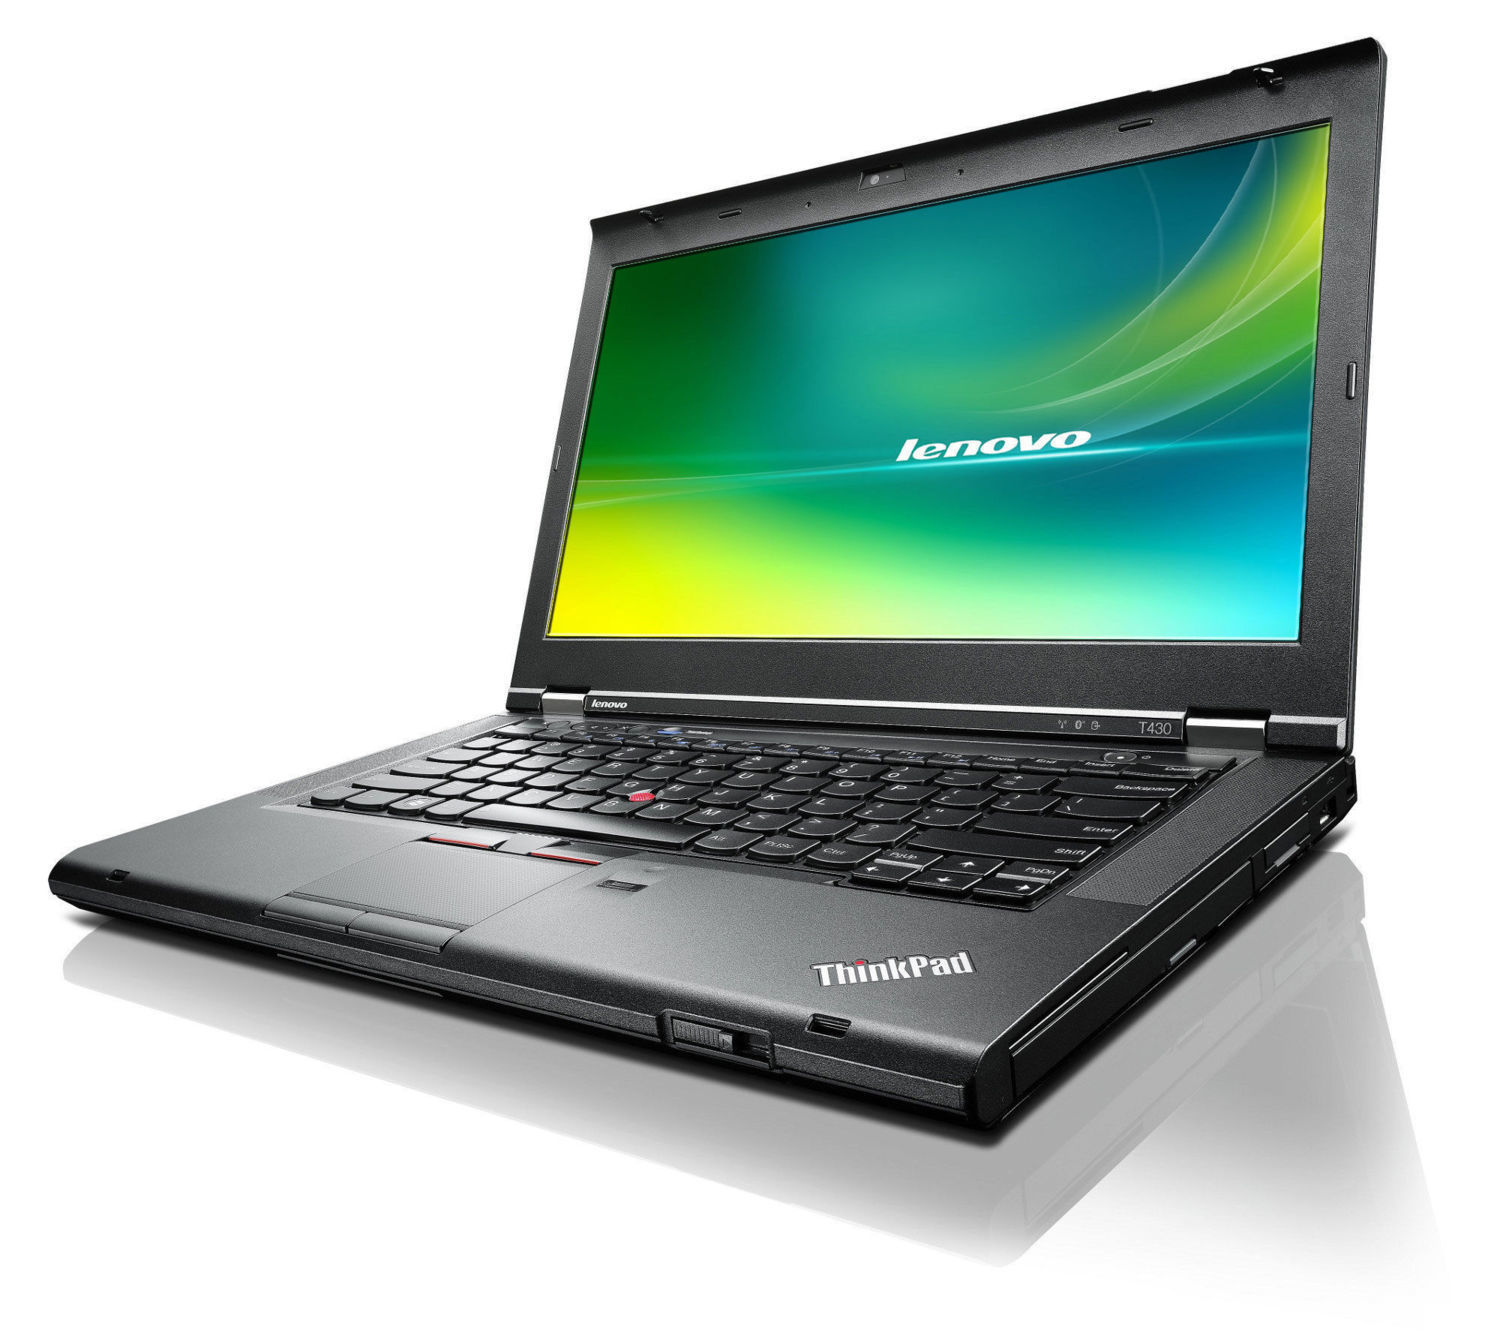 Thinkpad T430 - Intel Core i5 3320M 2.60Ghz Ecran 14,1'' - RAM 8 Go - 240Go SSD - Graveur DVD - Windows 7 Pro